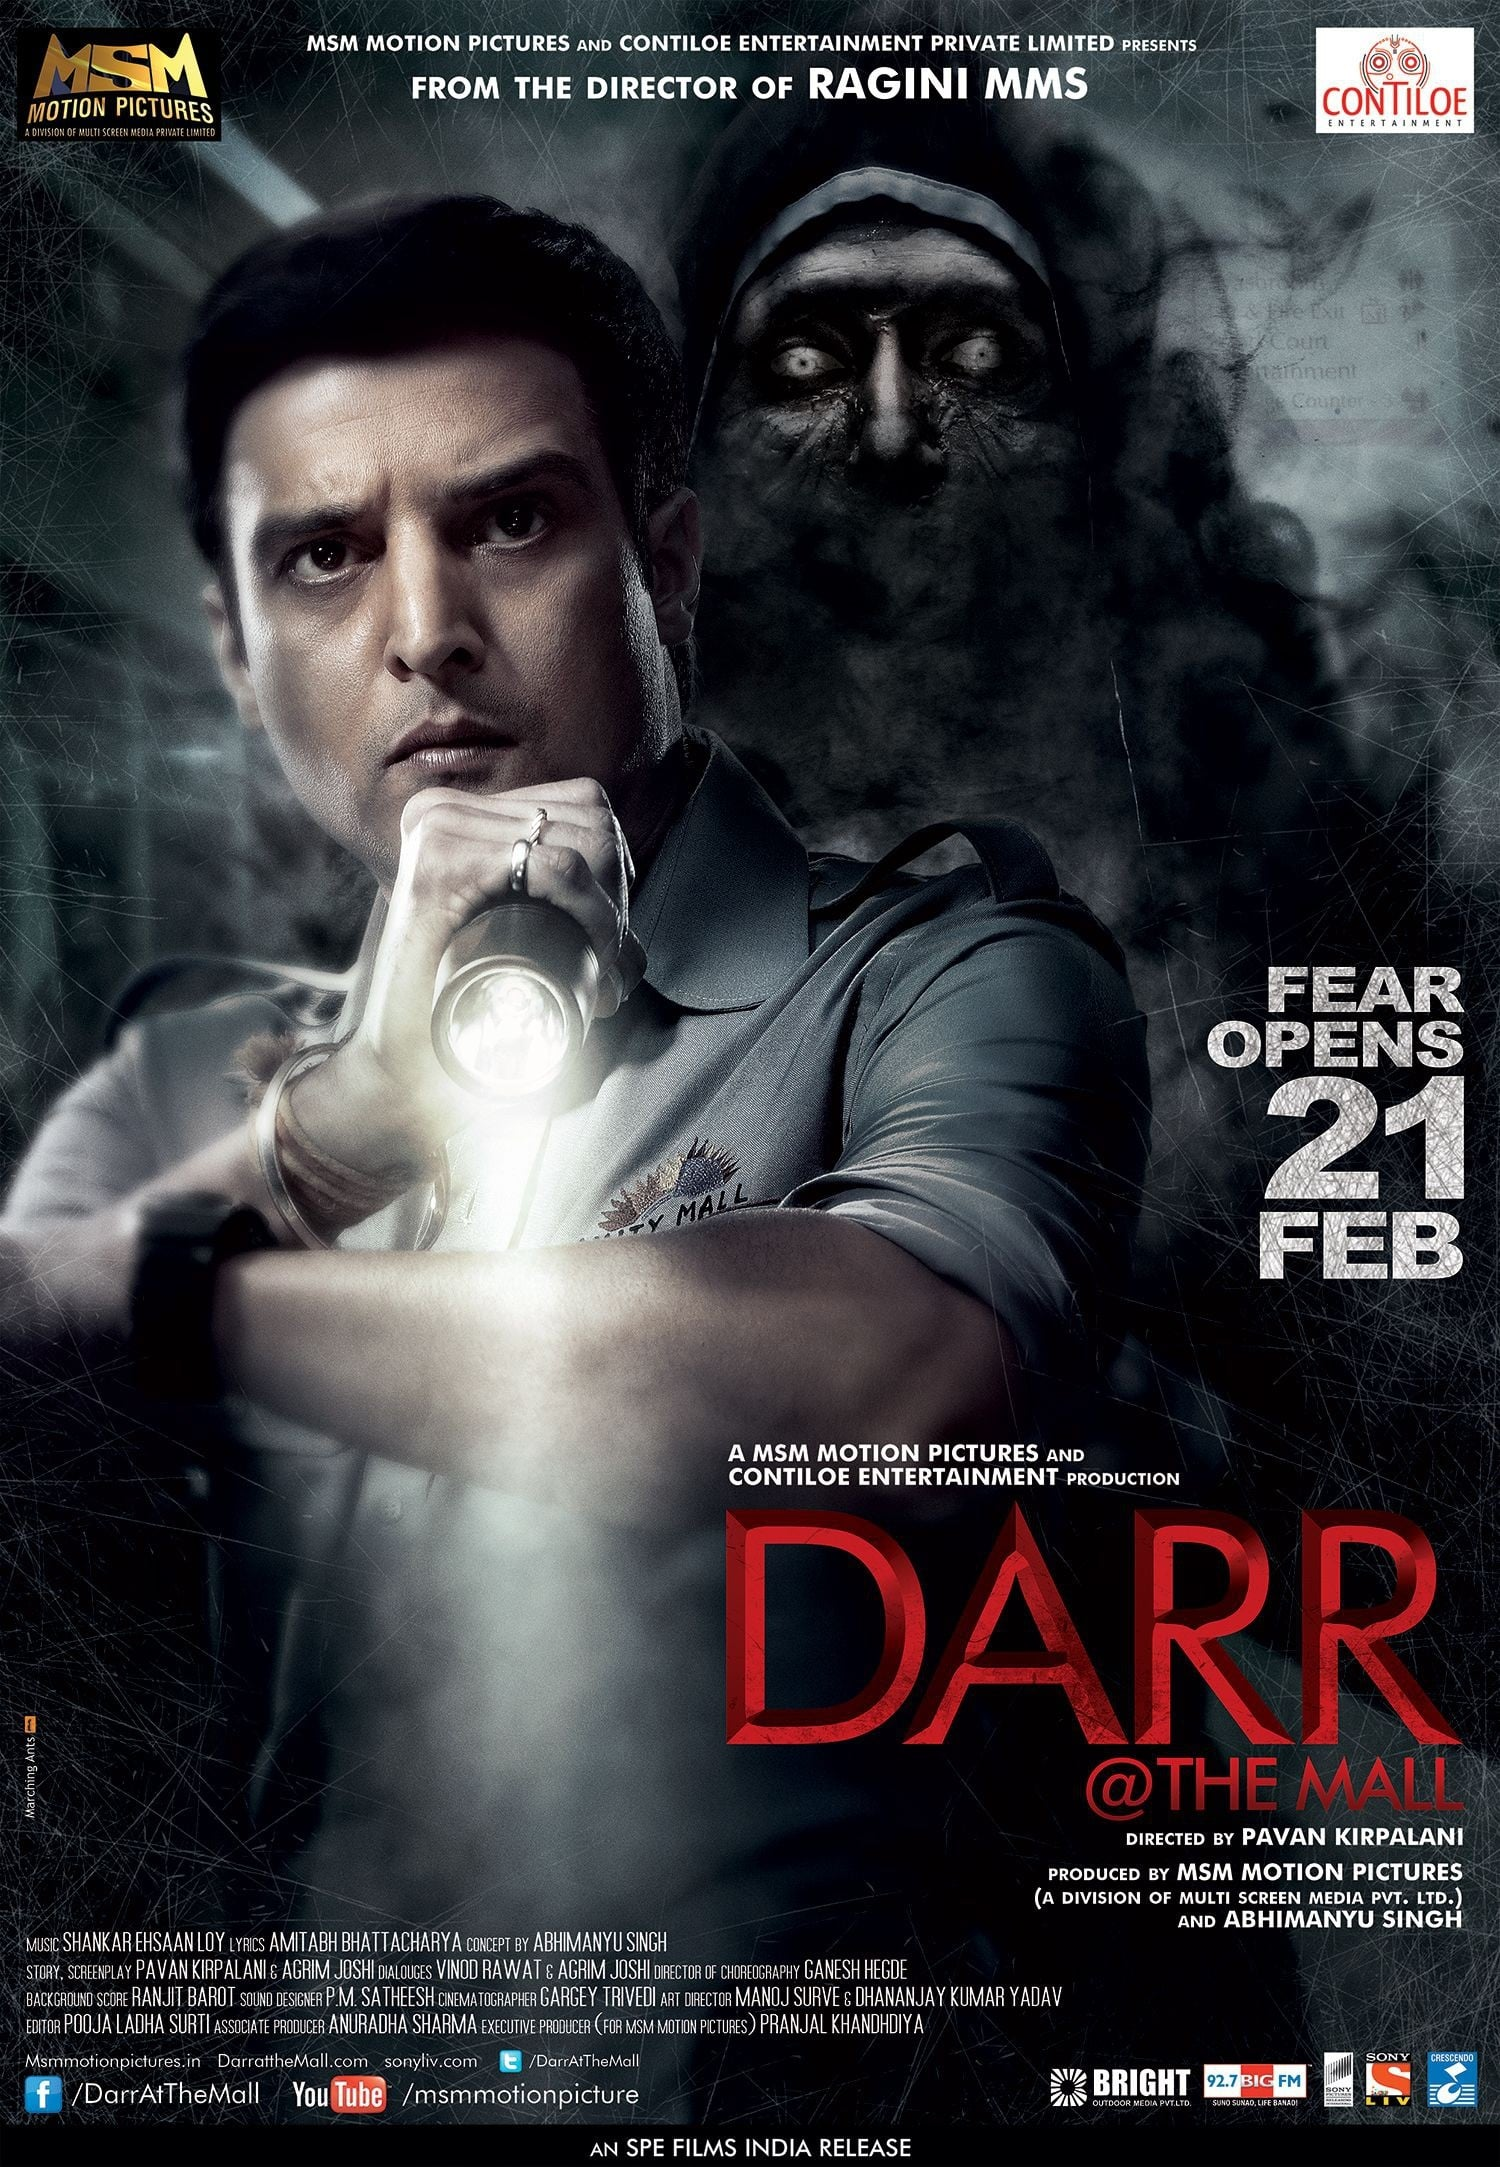 Poster and image movie Darr @ the Mall